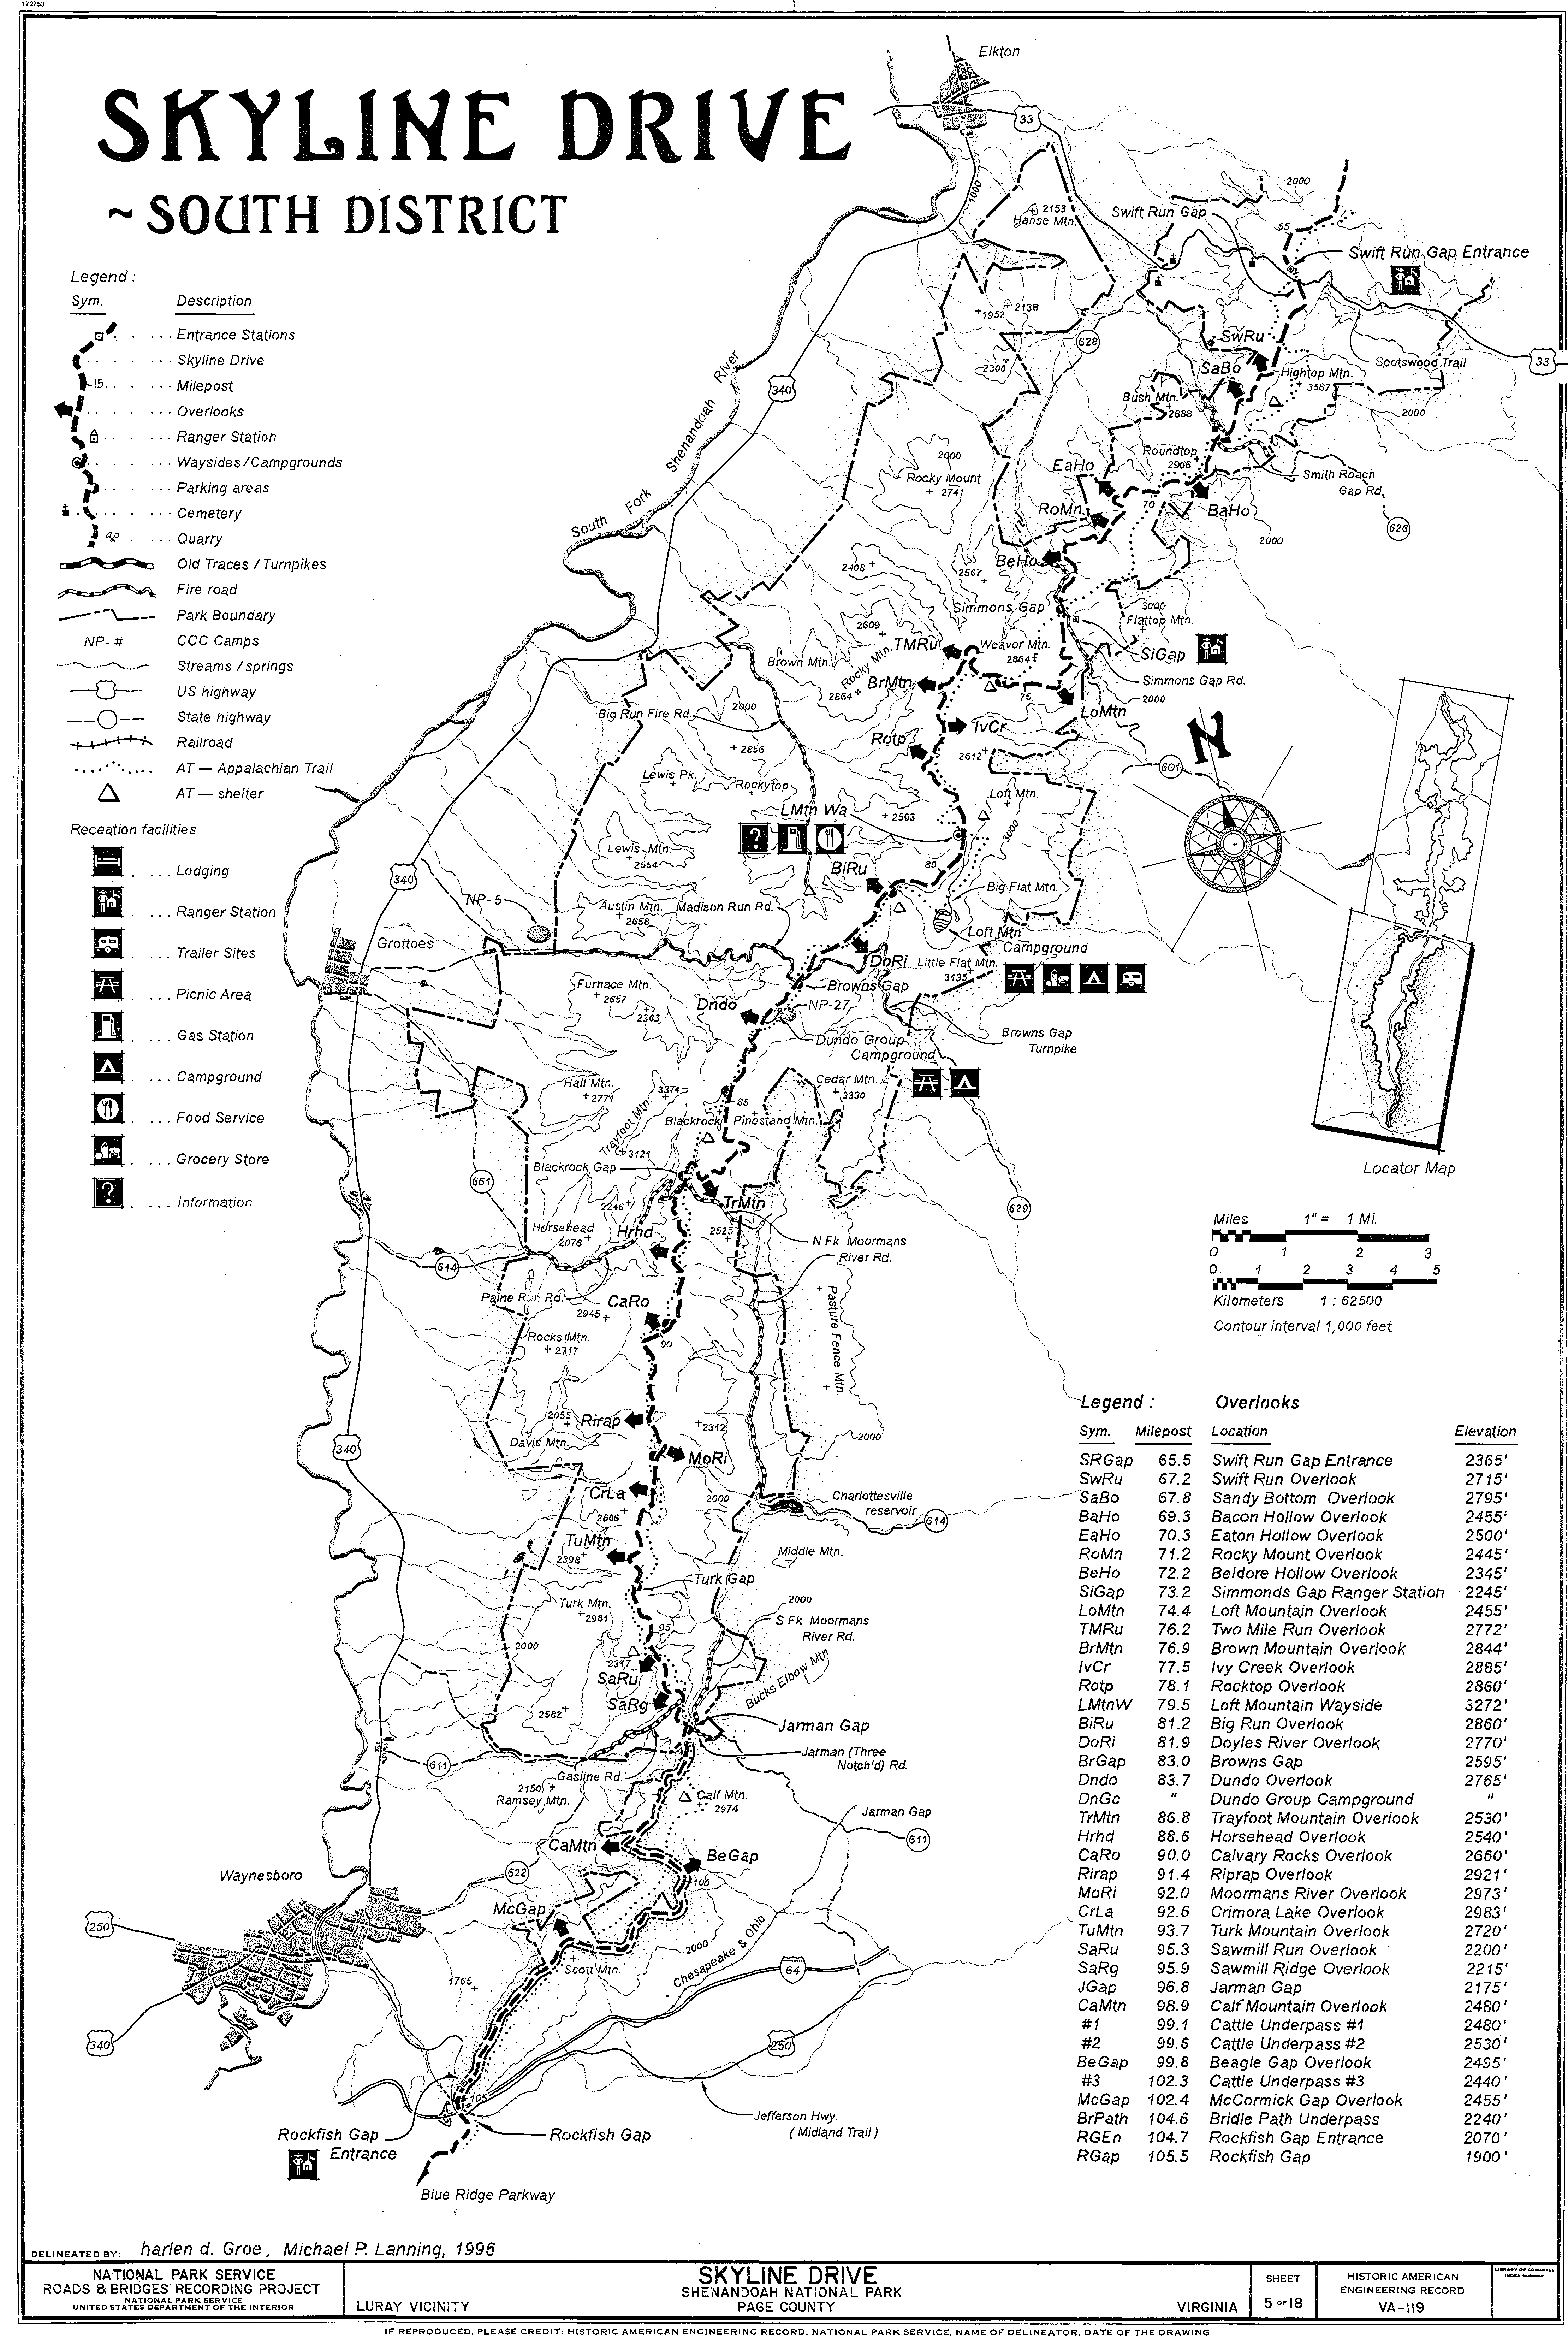 Skyline Drive Map File:Skyline Drive   Map 3   South District.   Wikimedia Commons Skyline Drive Map